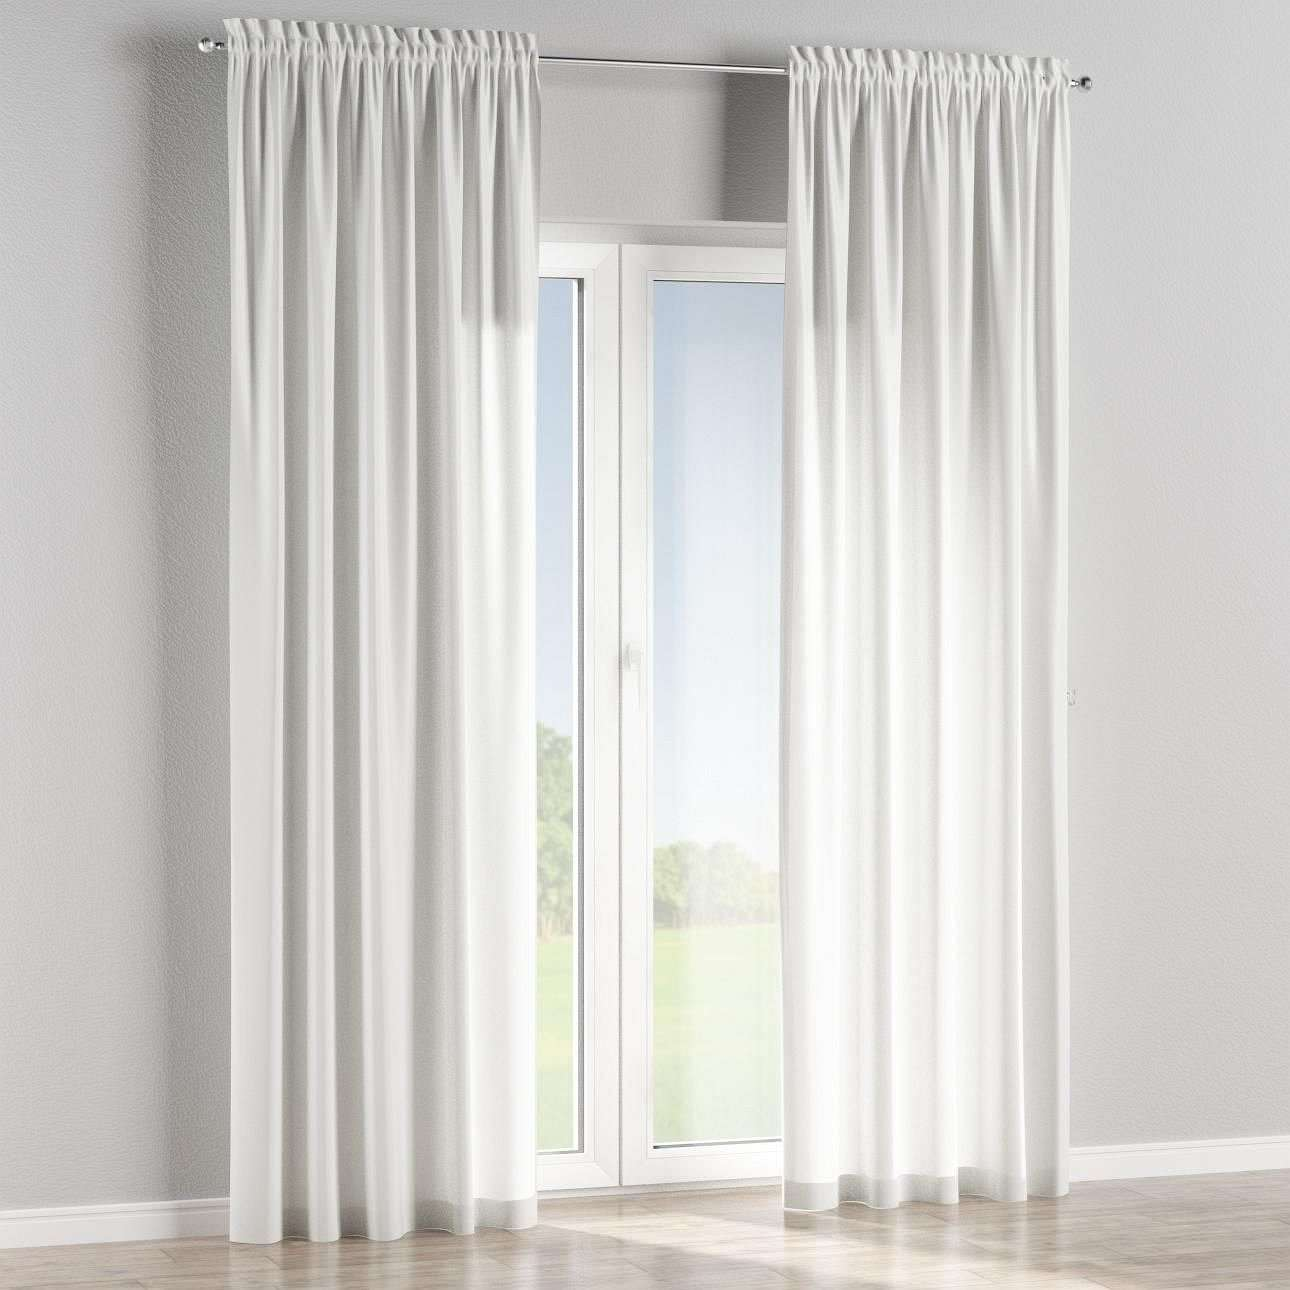 Slot and frill curtains in collection Cardiff, fabric: 136-20